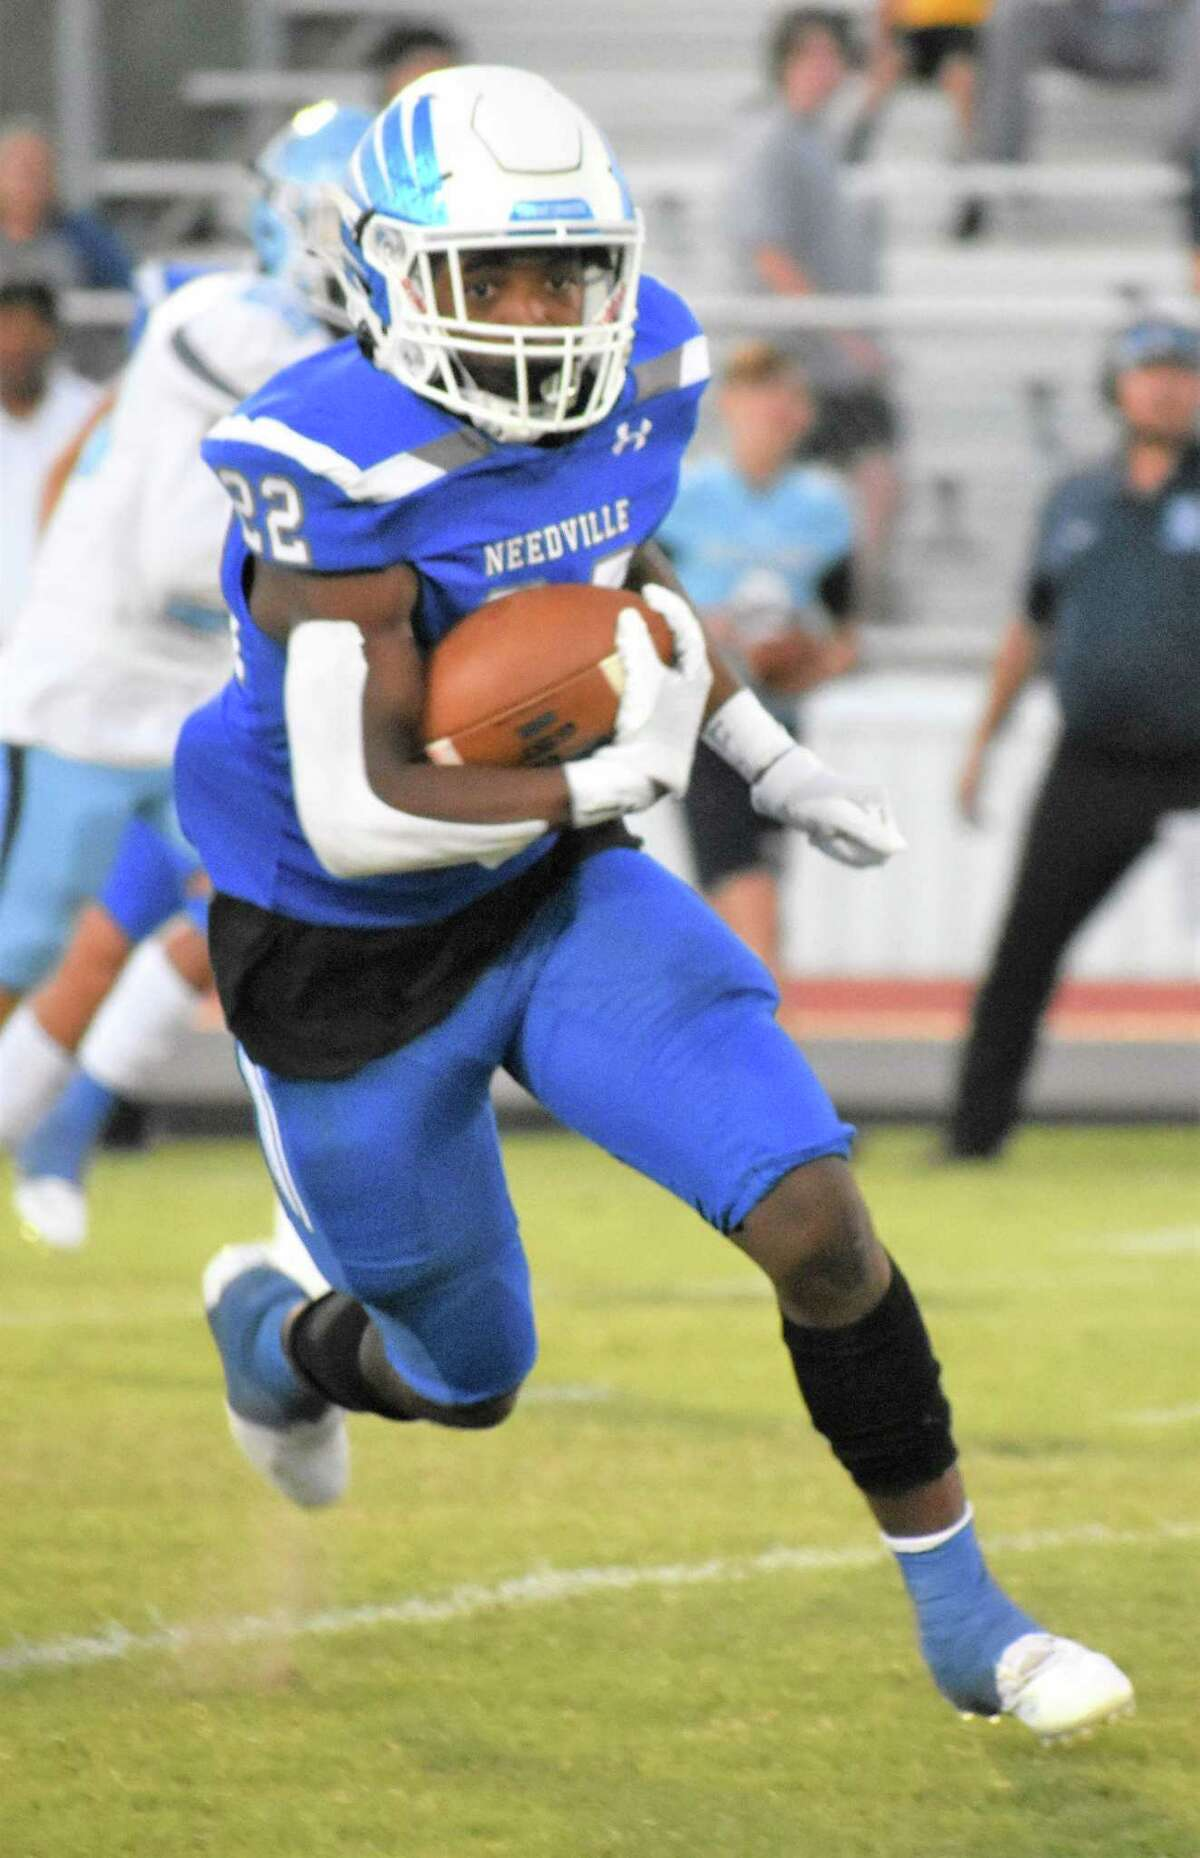 Needville running back Da'Shawn Burton carried 20 times for 175 yards and four touchdowns as the Blue Jays defeated Sweeny on homecoming in their non-district finale.